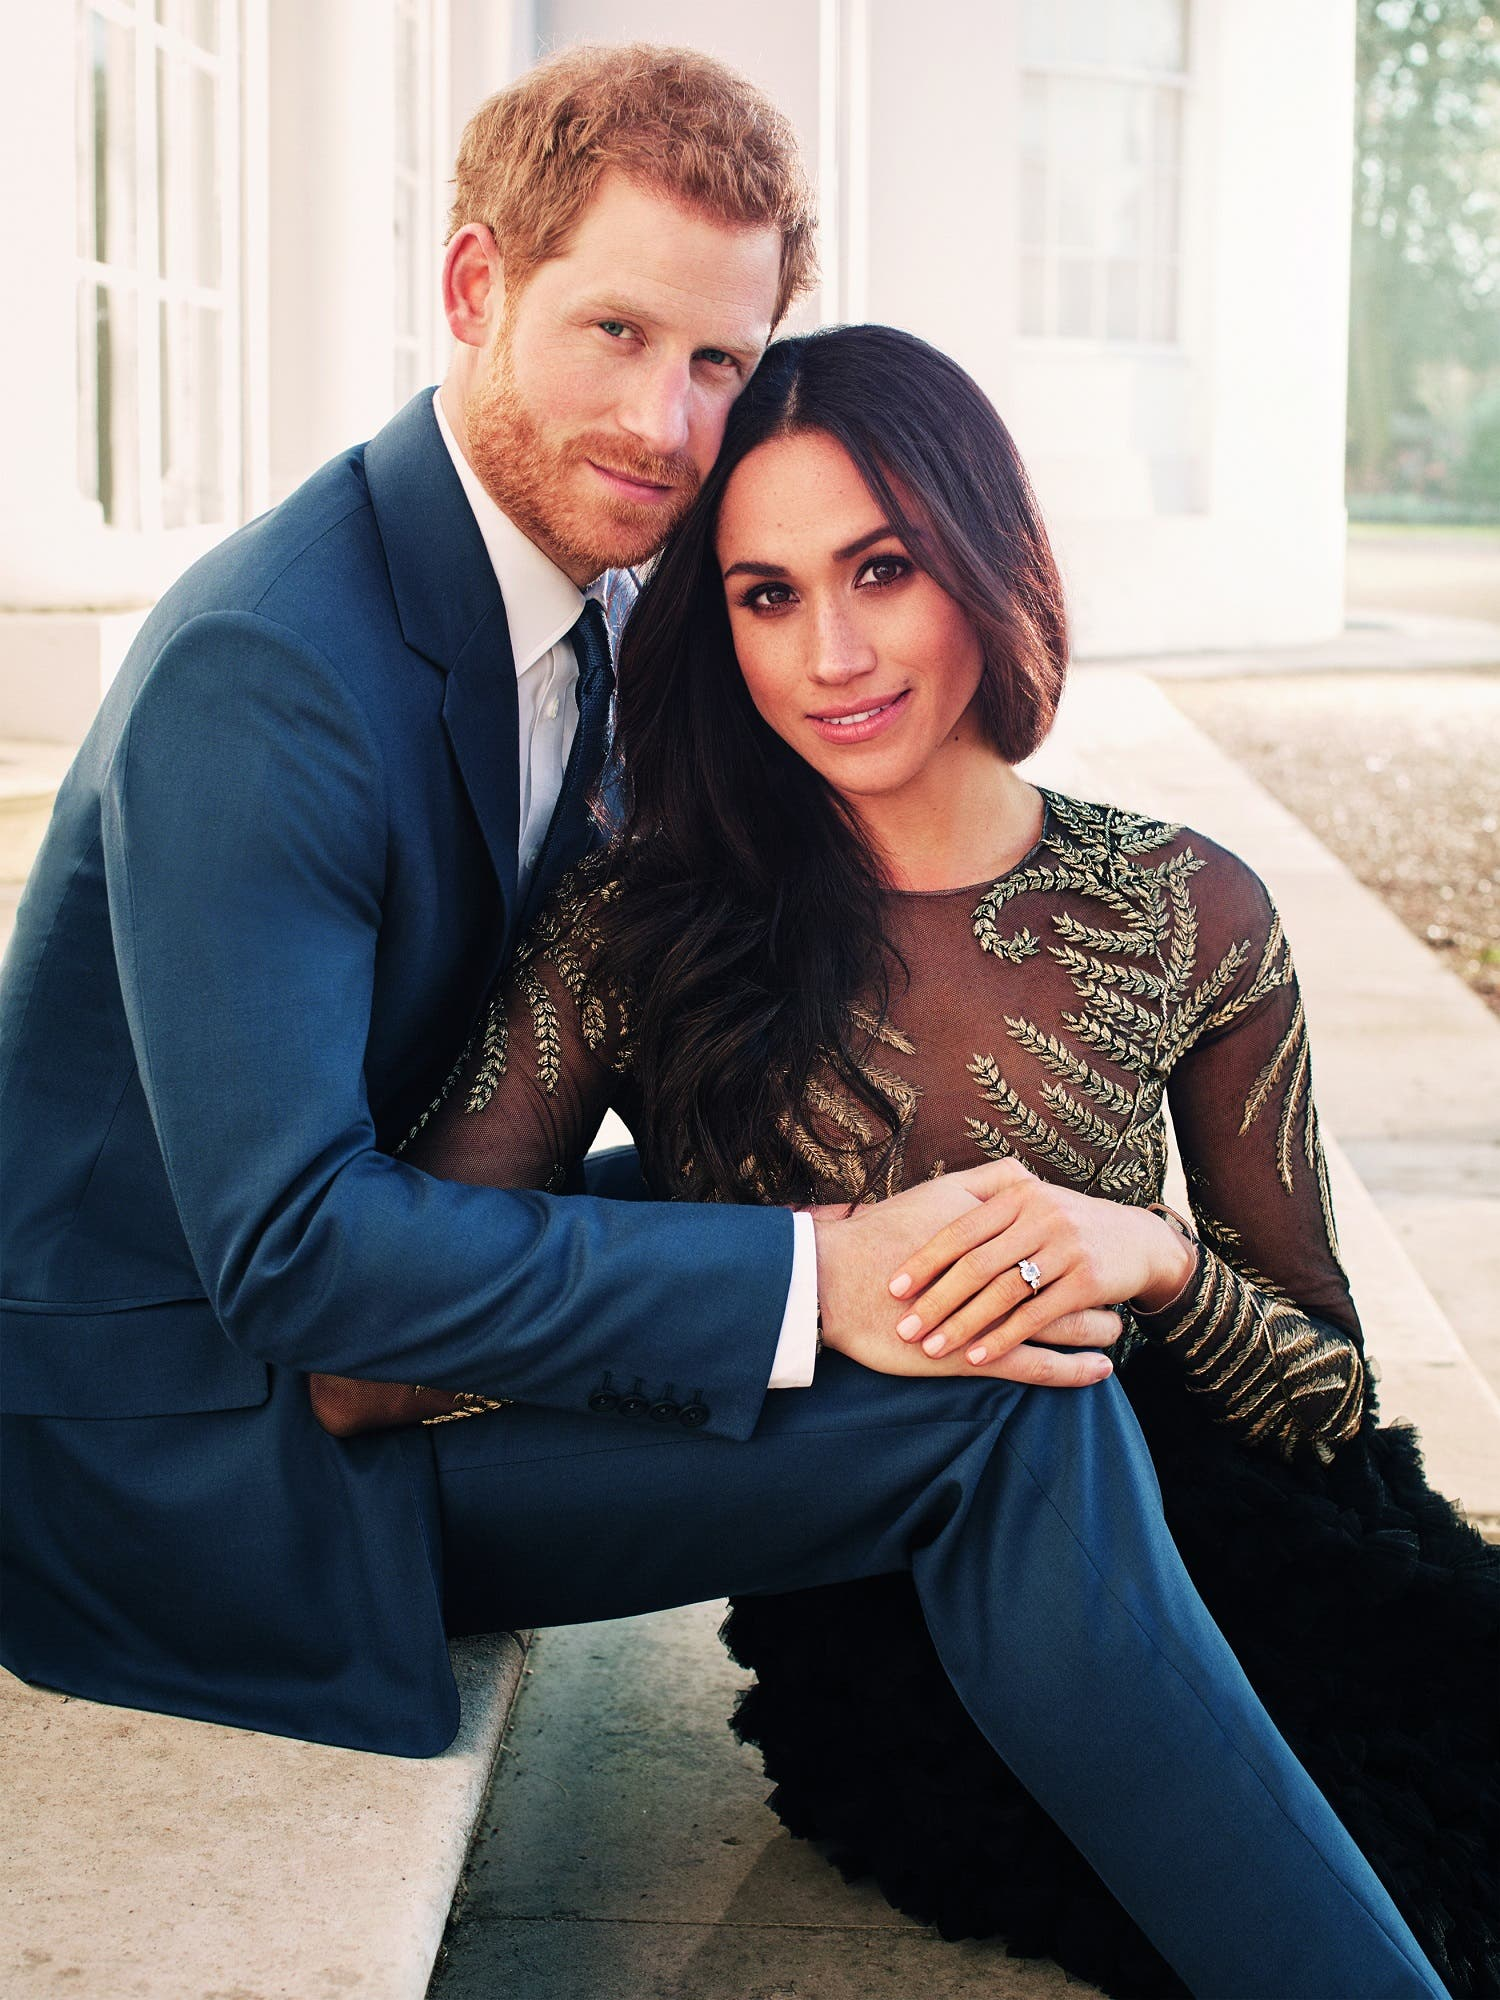 A handout picture released on December 21, 2017 by Kensington Palace shows Prince Harry posing with Meghan Markle at Frogmore House in Windsor. (AFP)